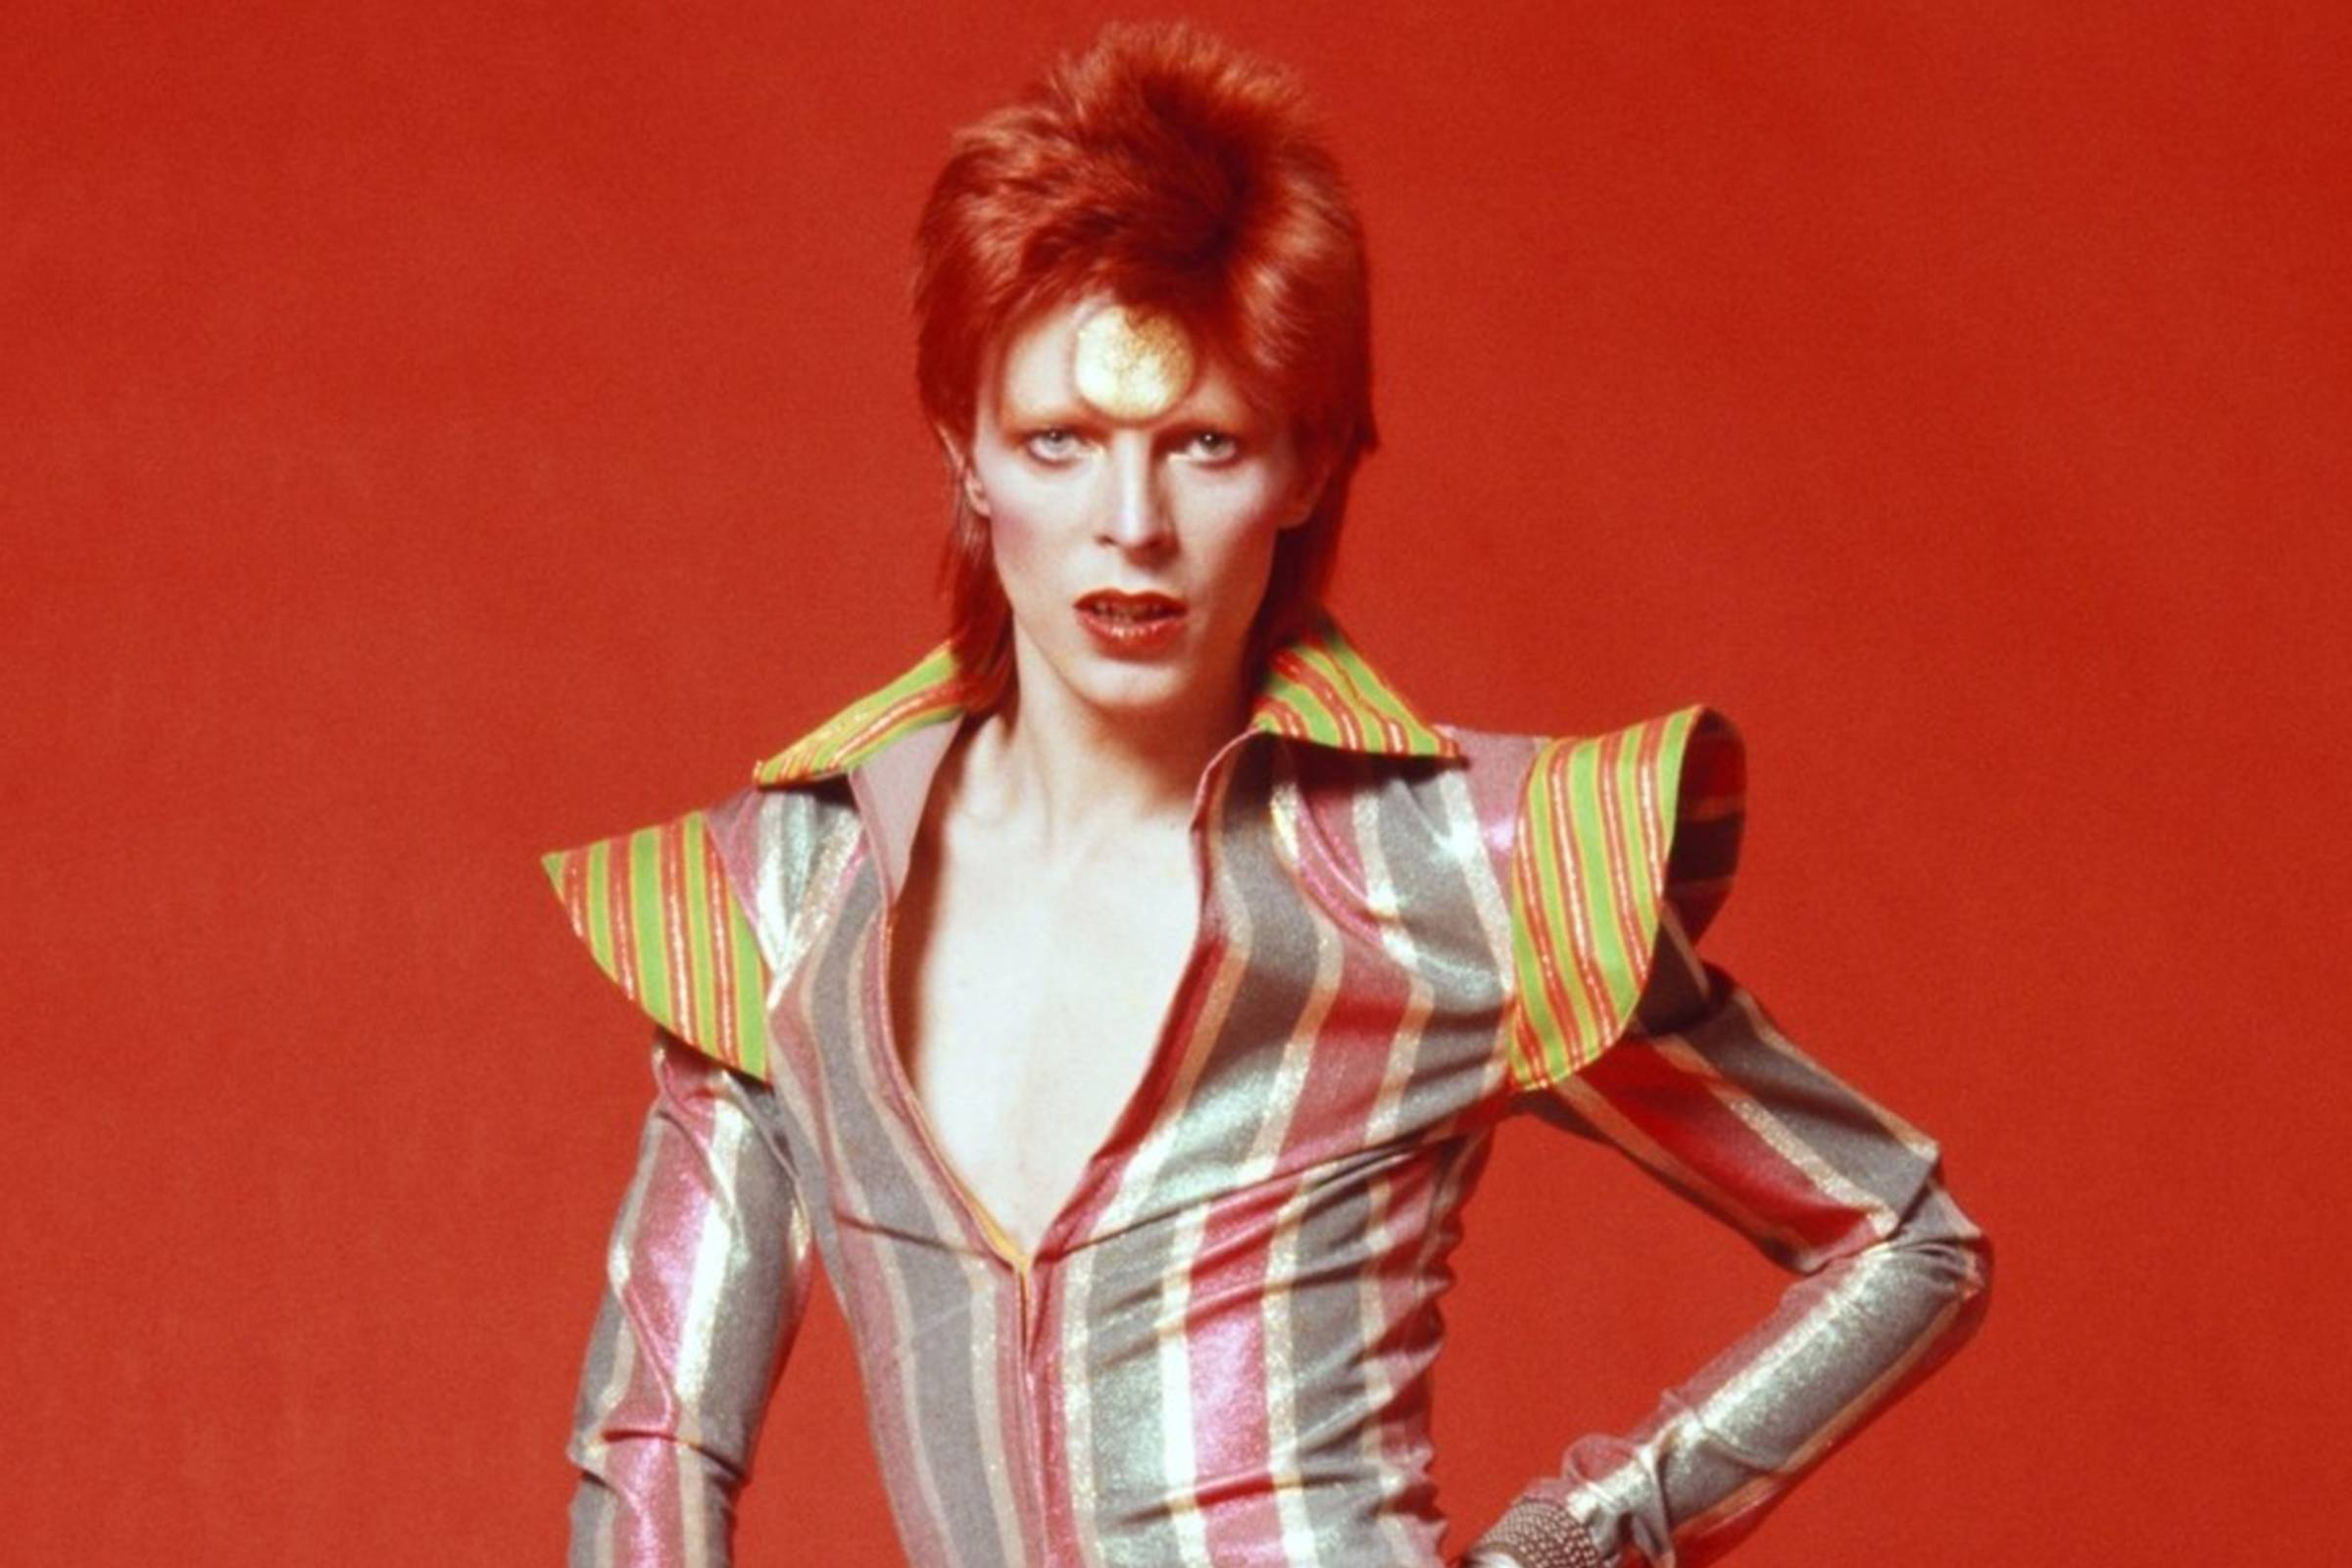 1ea200a54e7 Starman  David Bowie s Style Odyssey - David Bowie Fashion History ...